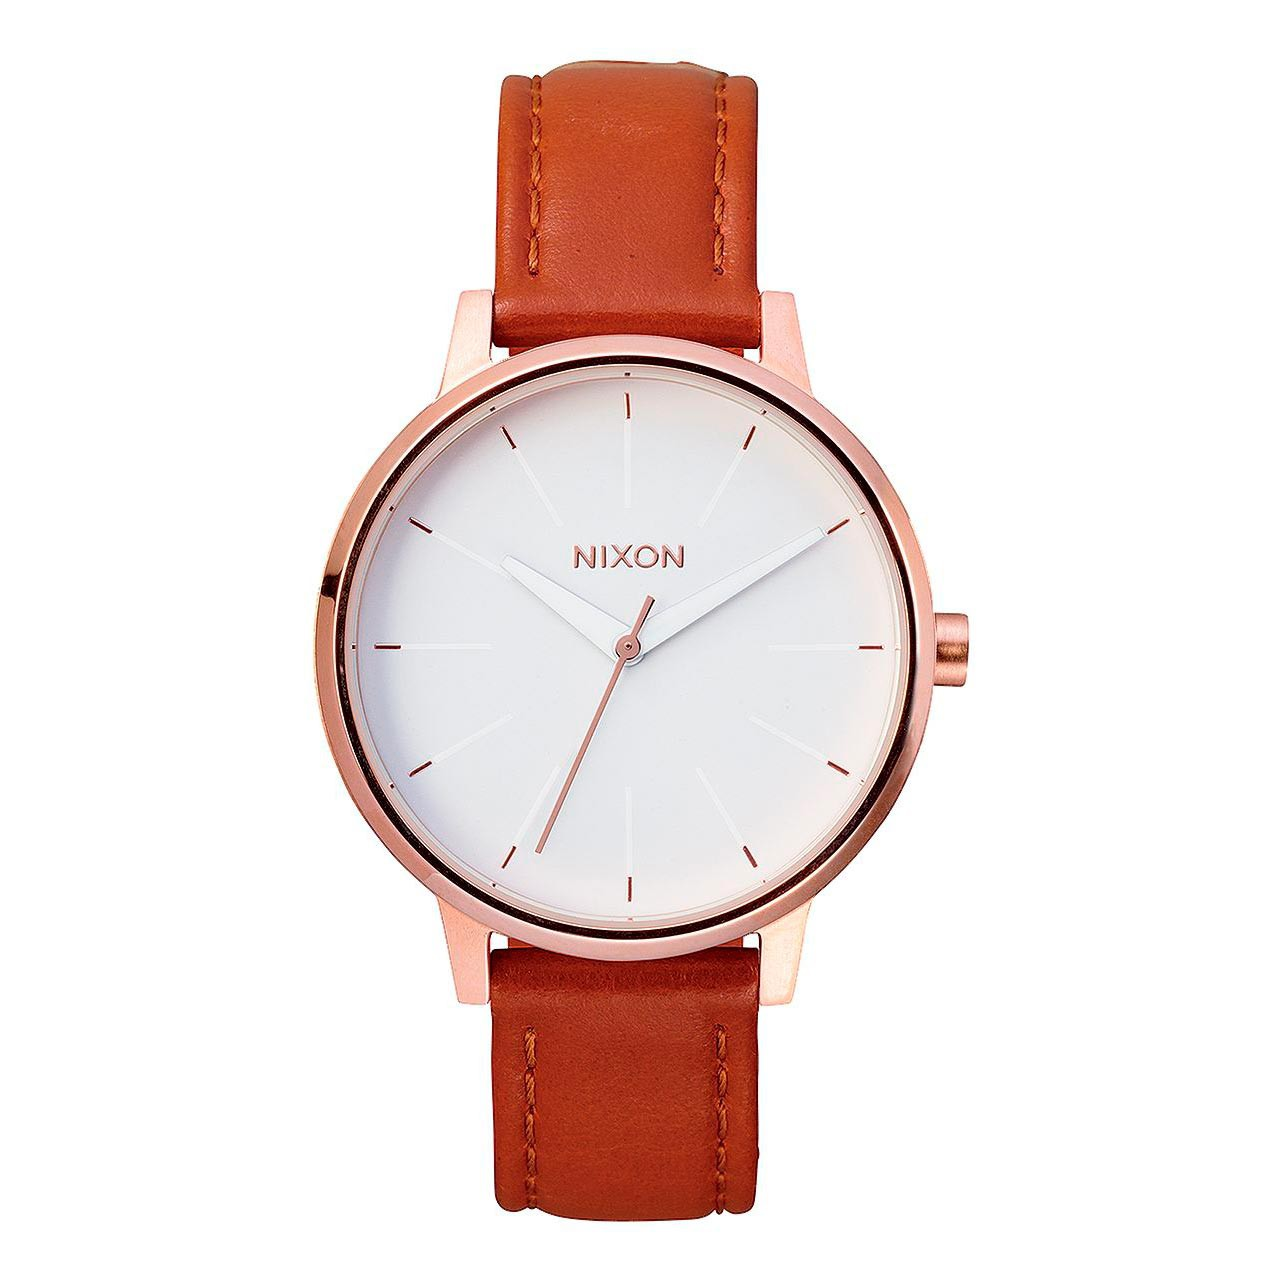 Hodinky Nixon Kensington Leather rose gold/white